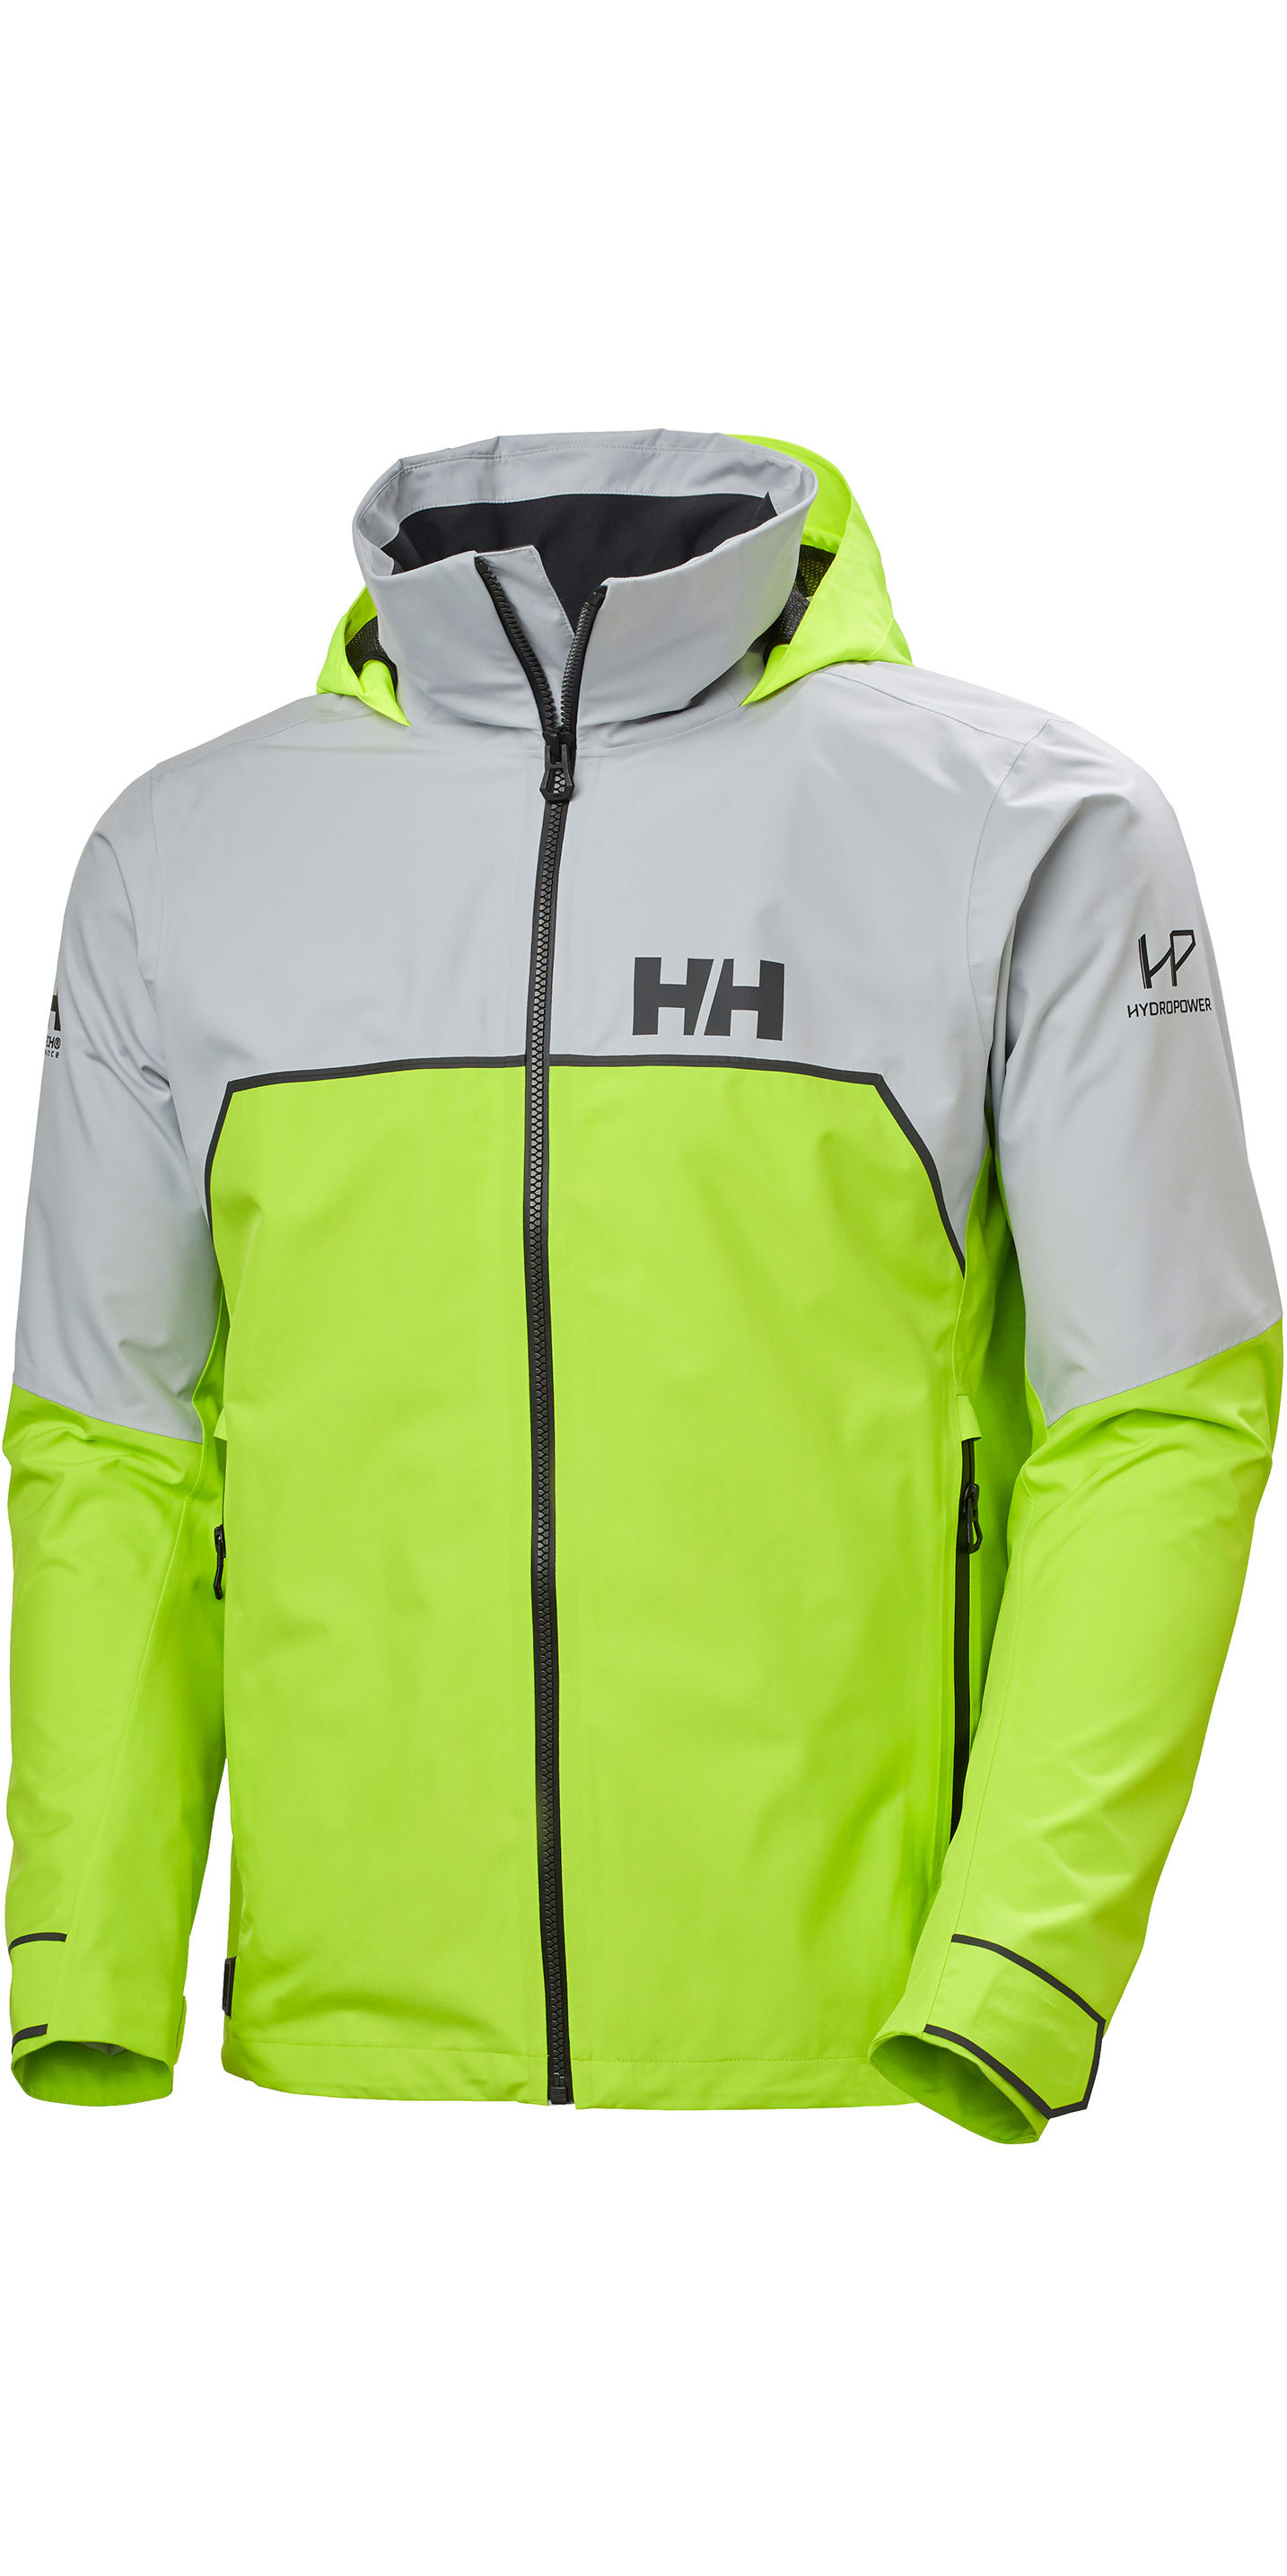 2020 Helly Hansen Mens HP Foil Light Sailing Jacket 34151 - Azid Lime